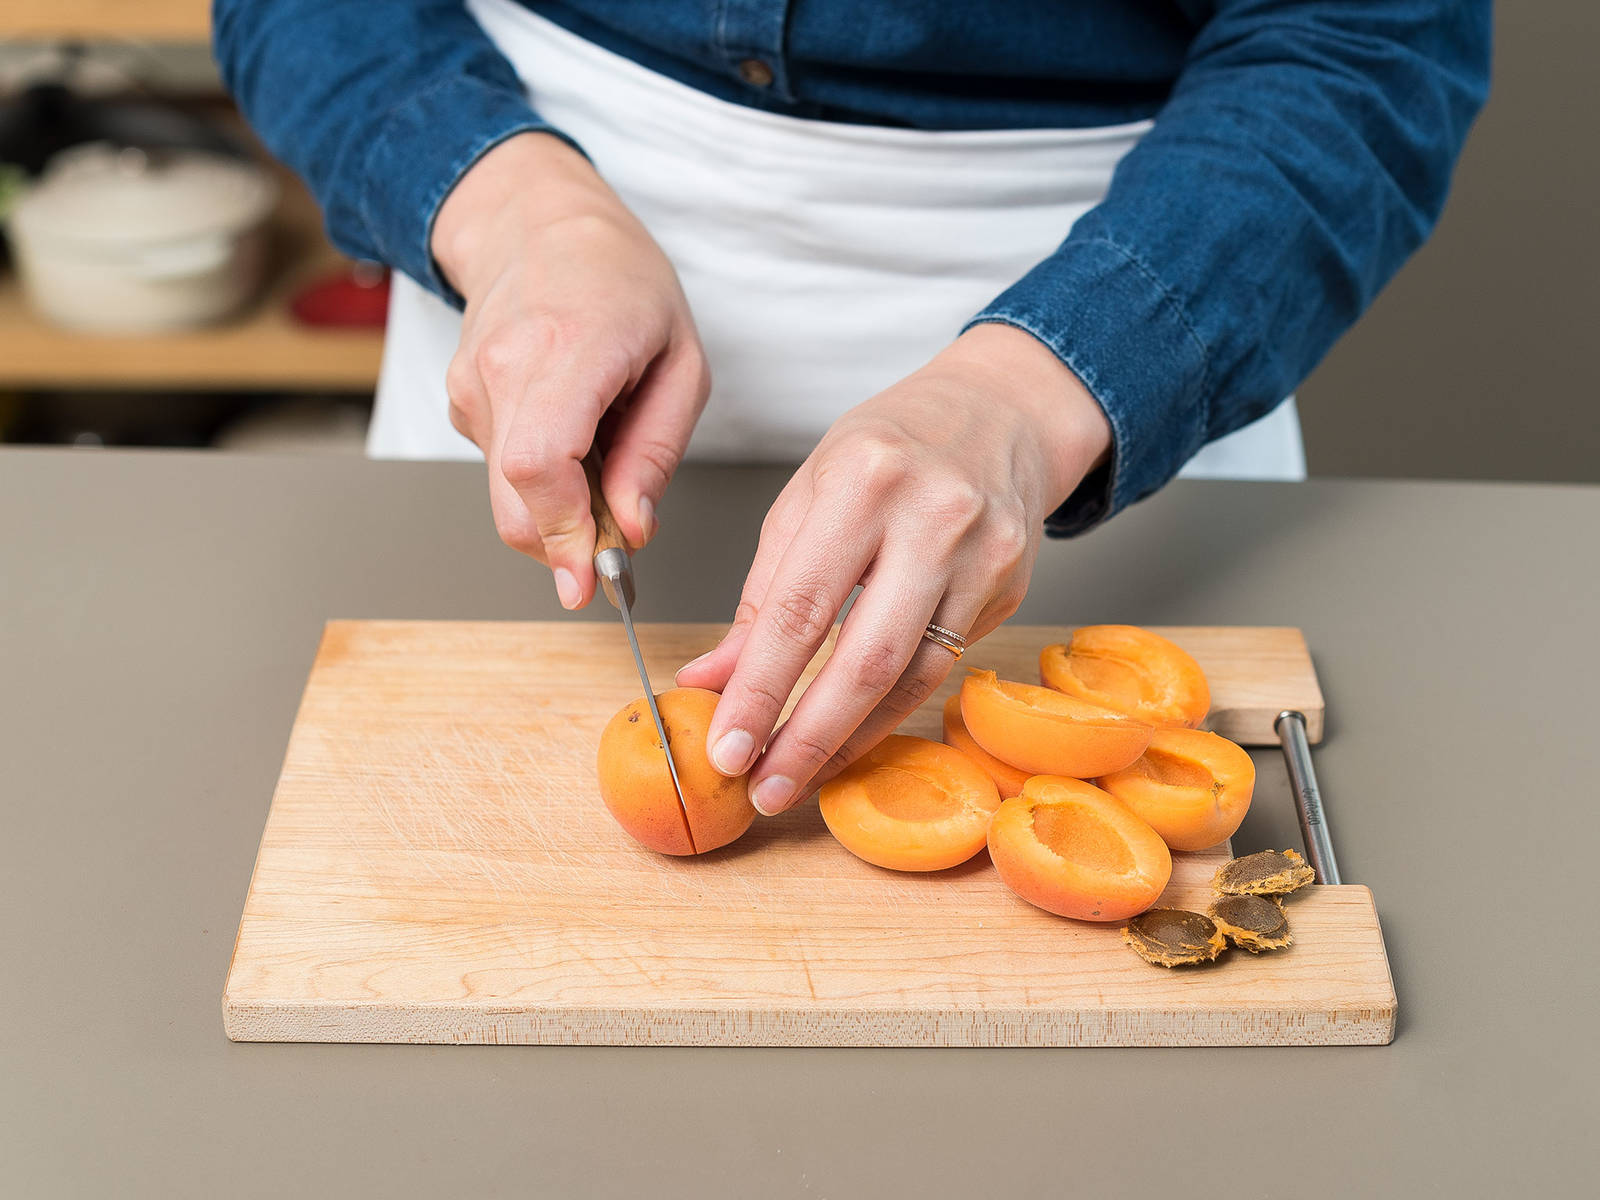 Preheat oven to 200°C/400°F, and grease the tart pan. Melt butter in a small pot over low heat, and set aside to cool. Wash apricots and dry, remove pit with a sharp knife, and cut in halves.